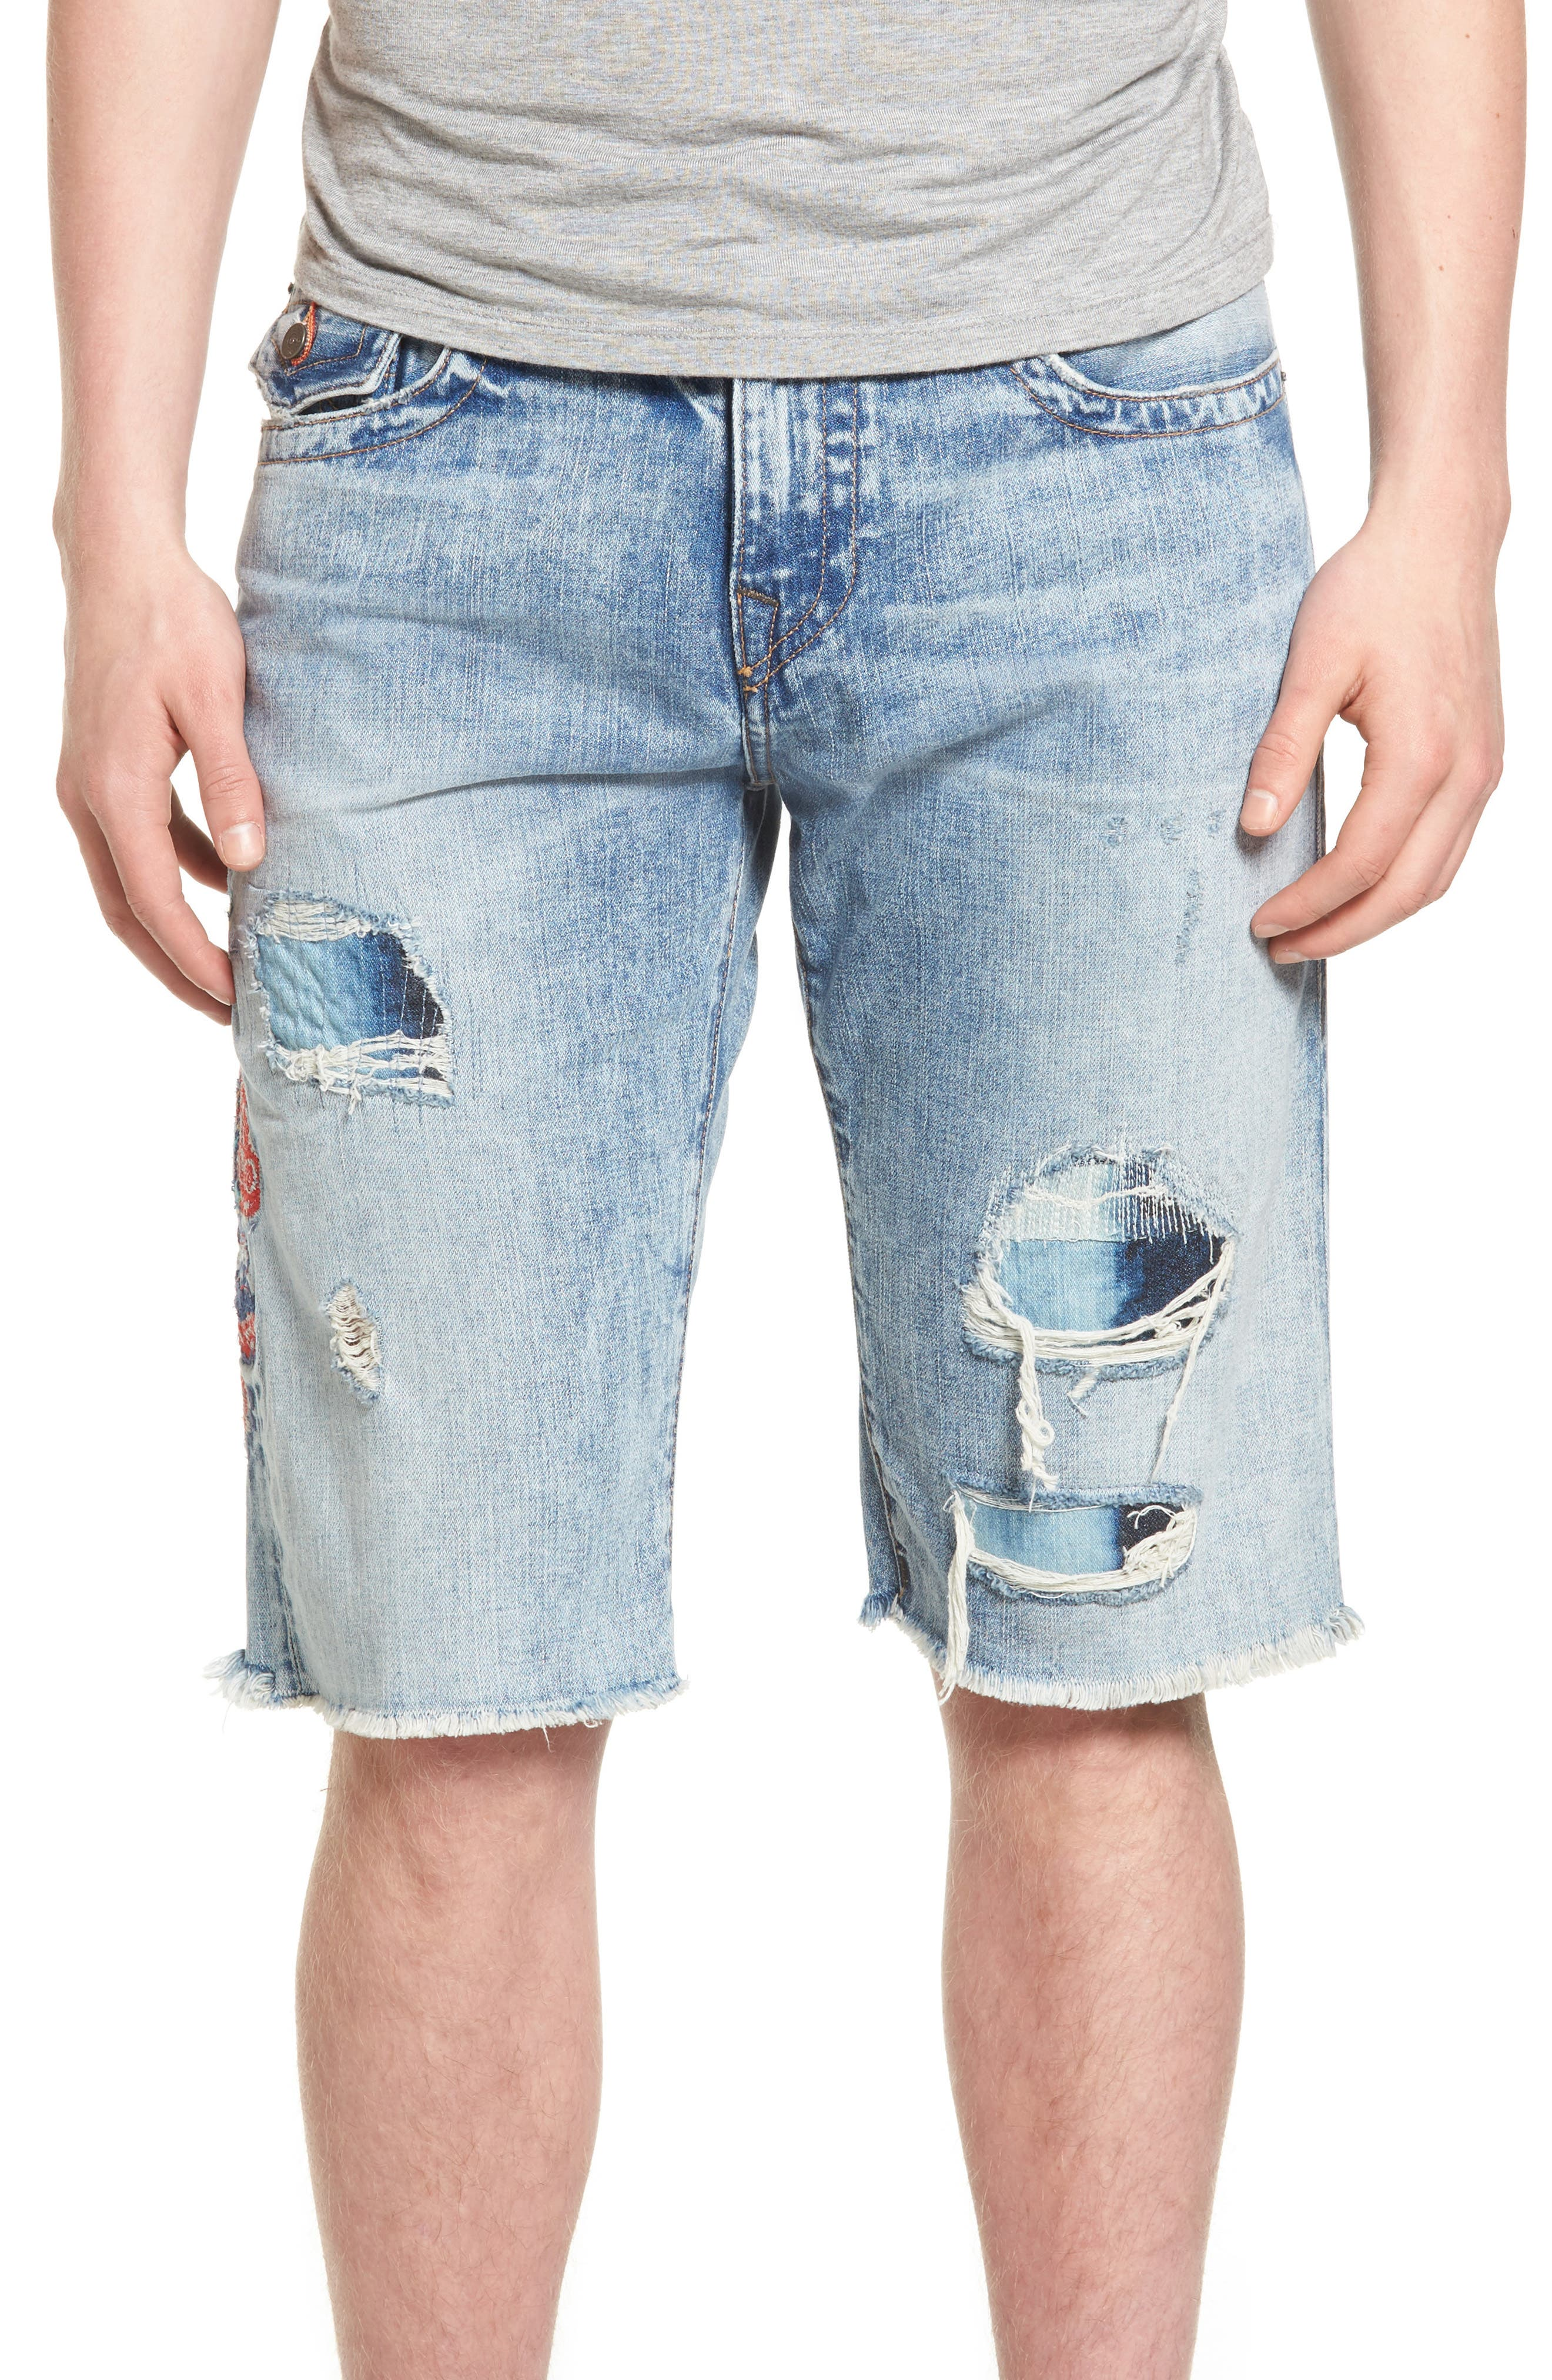 True Religion Brand Jeans Ricky Cutoff Denim Shorts